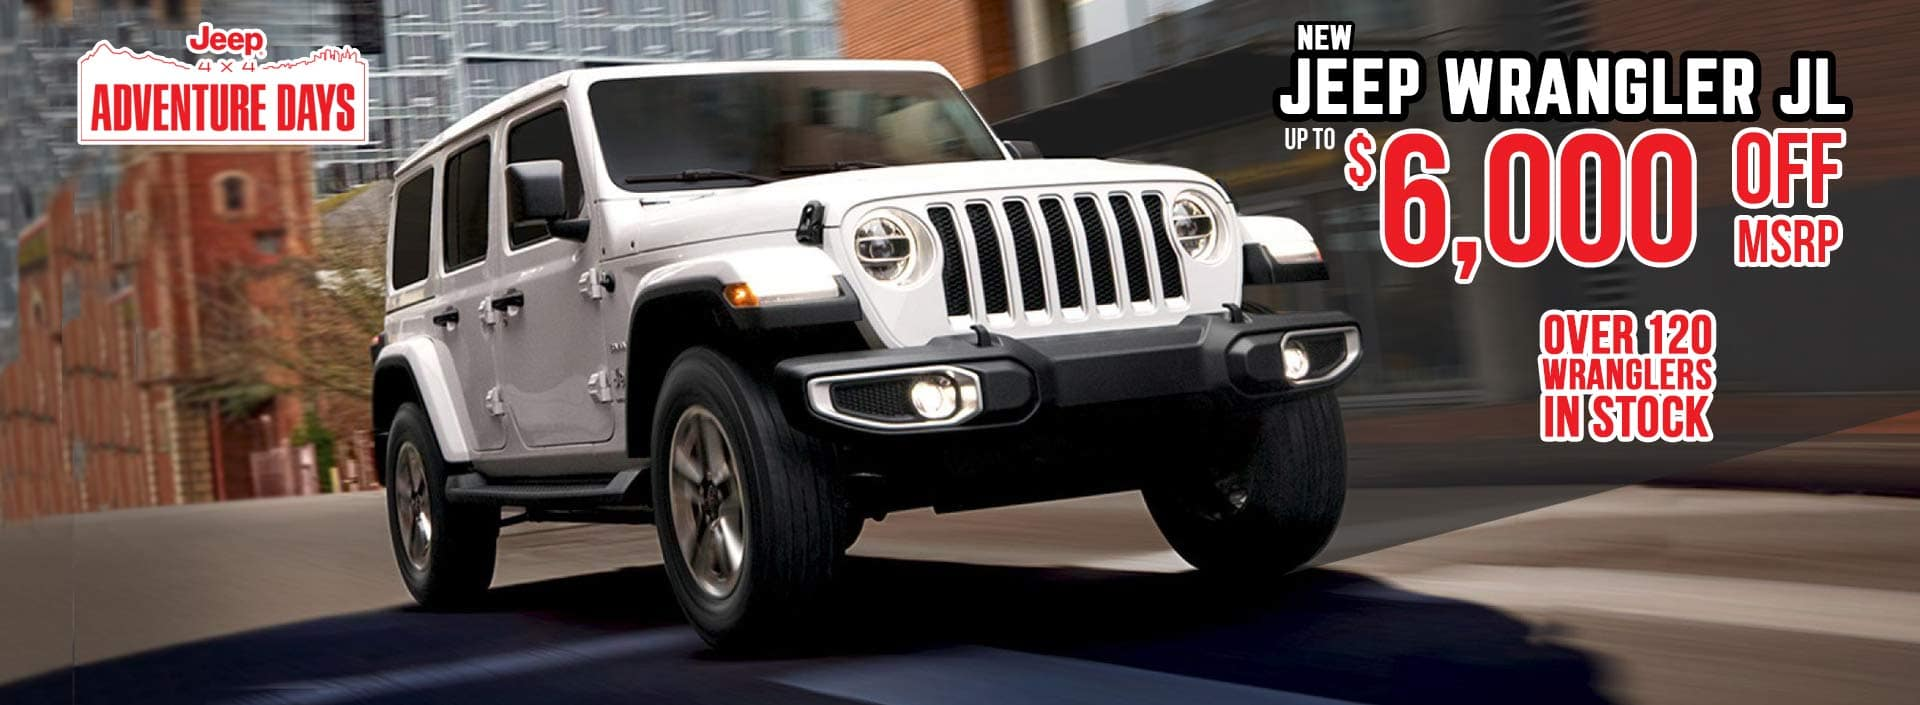 Fayetteville Chrysler Dodge Jeep Ram | New and Used Cars